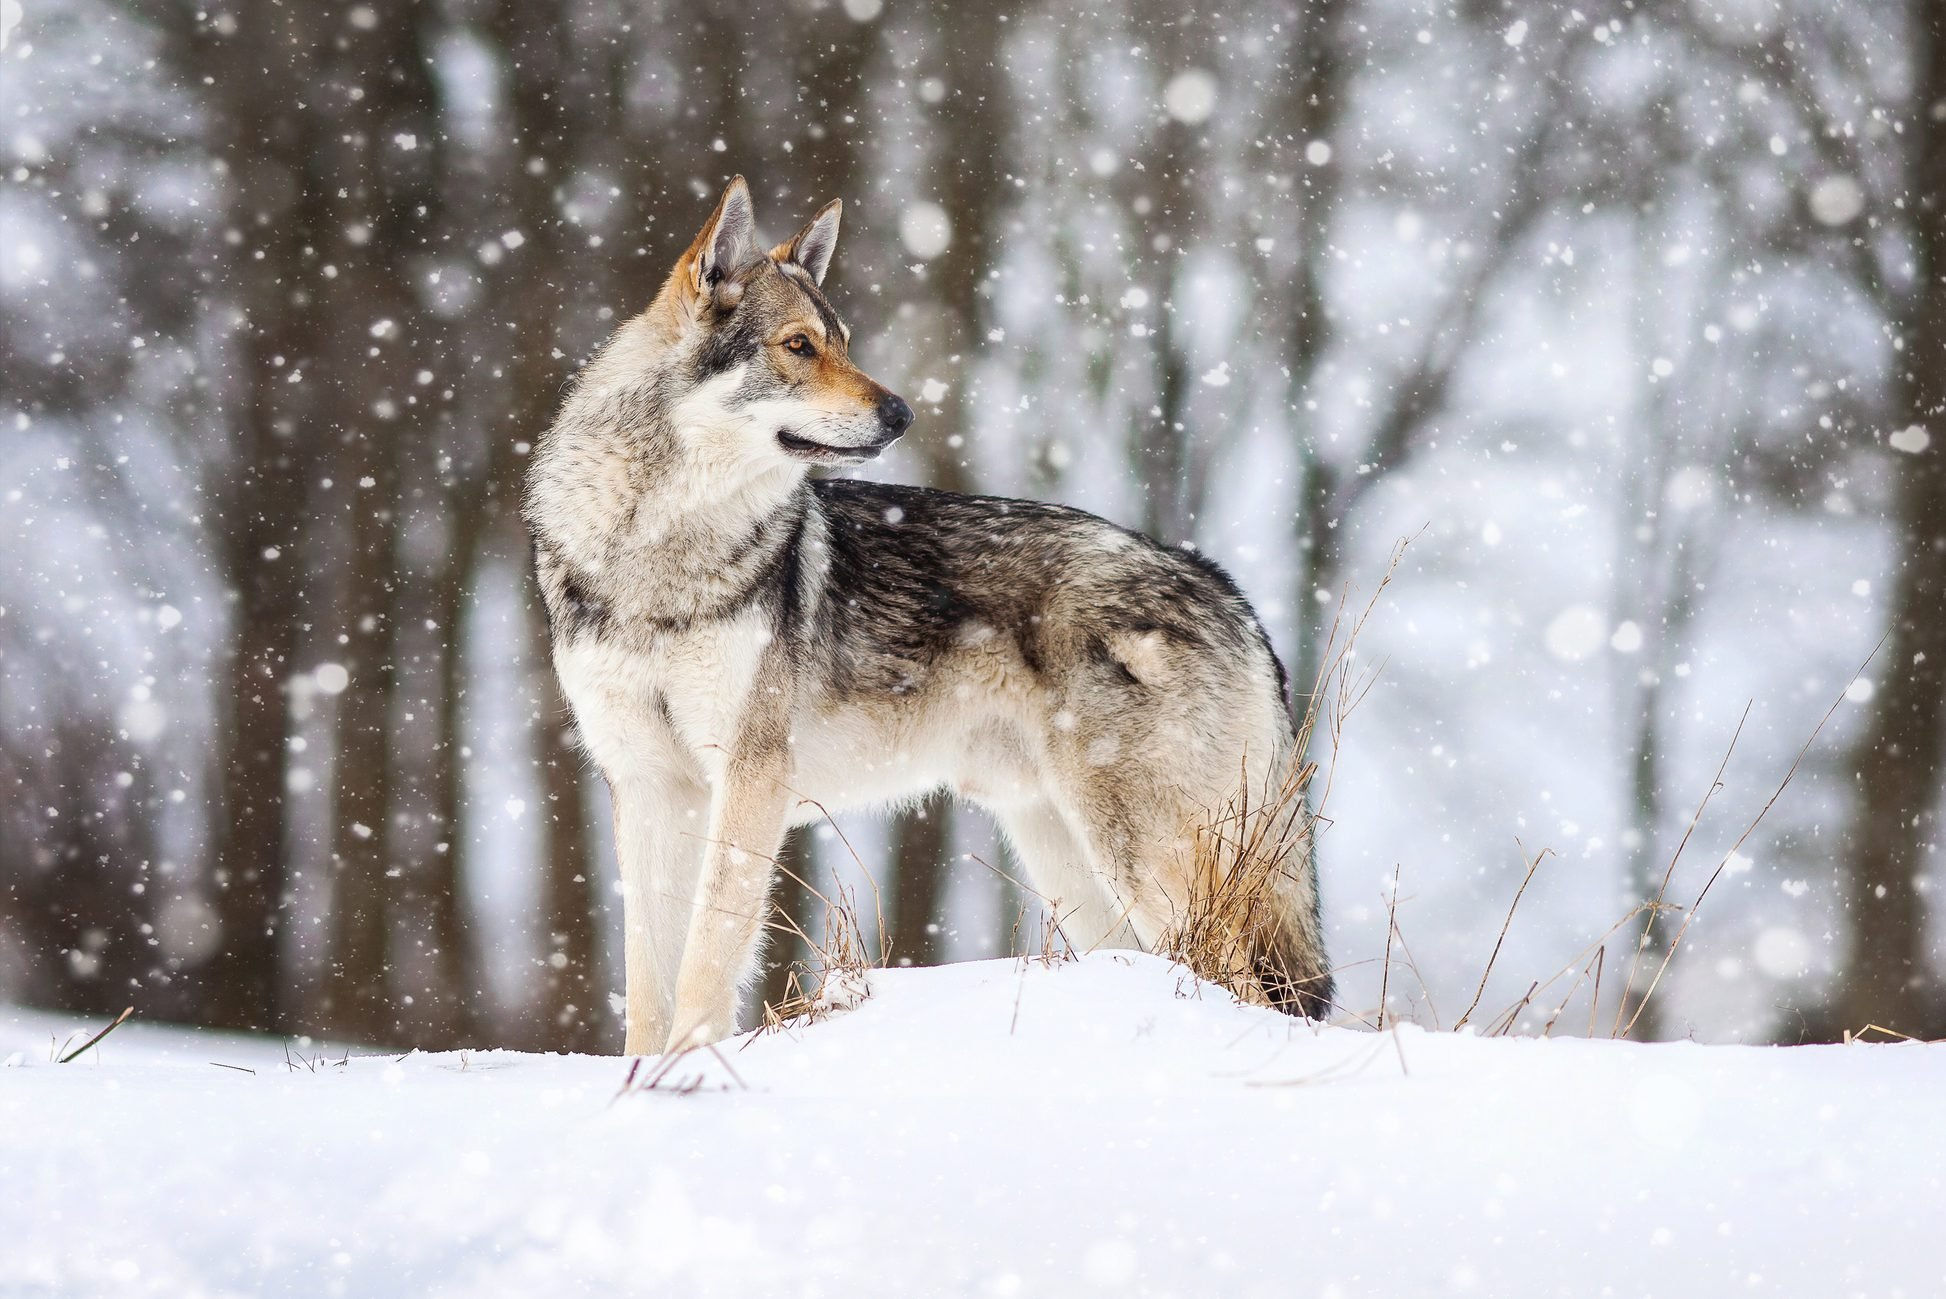 A wolf dog in the snow.